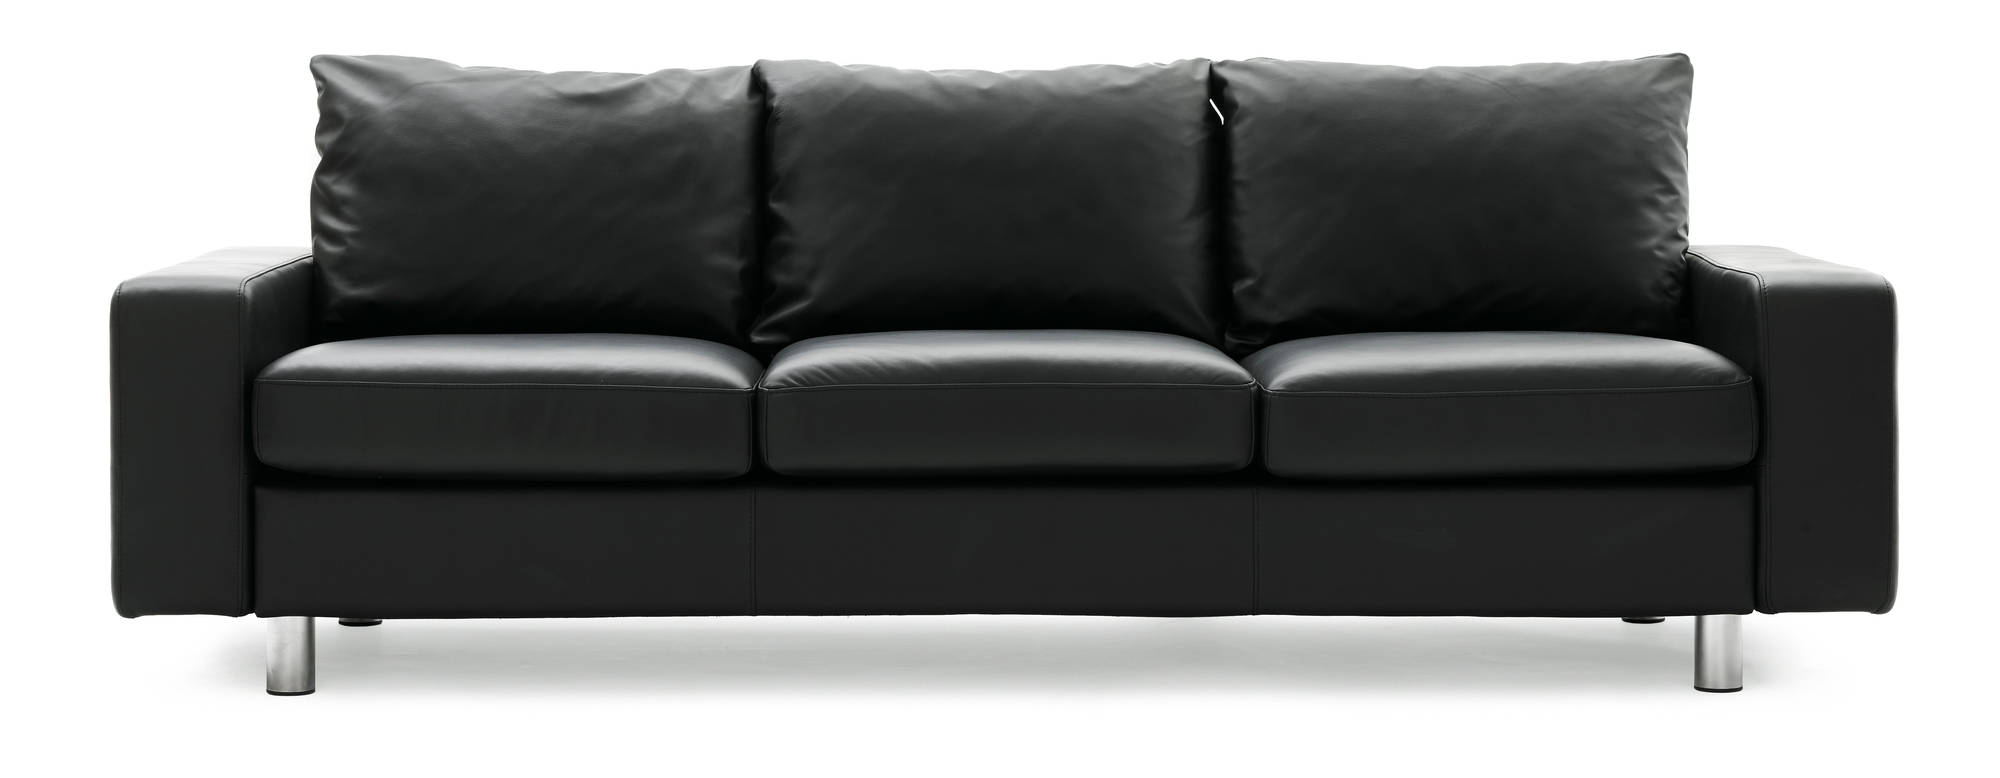 sofas low cost sofa mattress stressless special prices